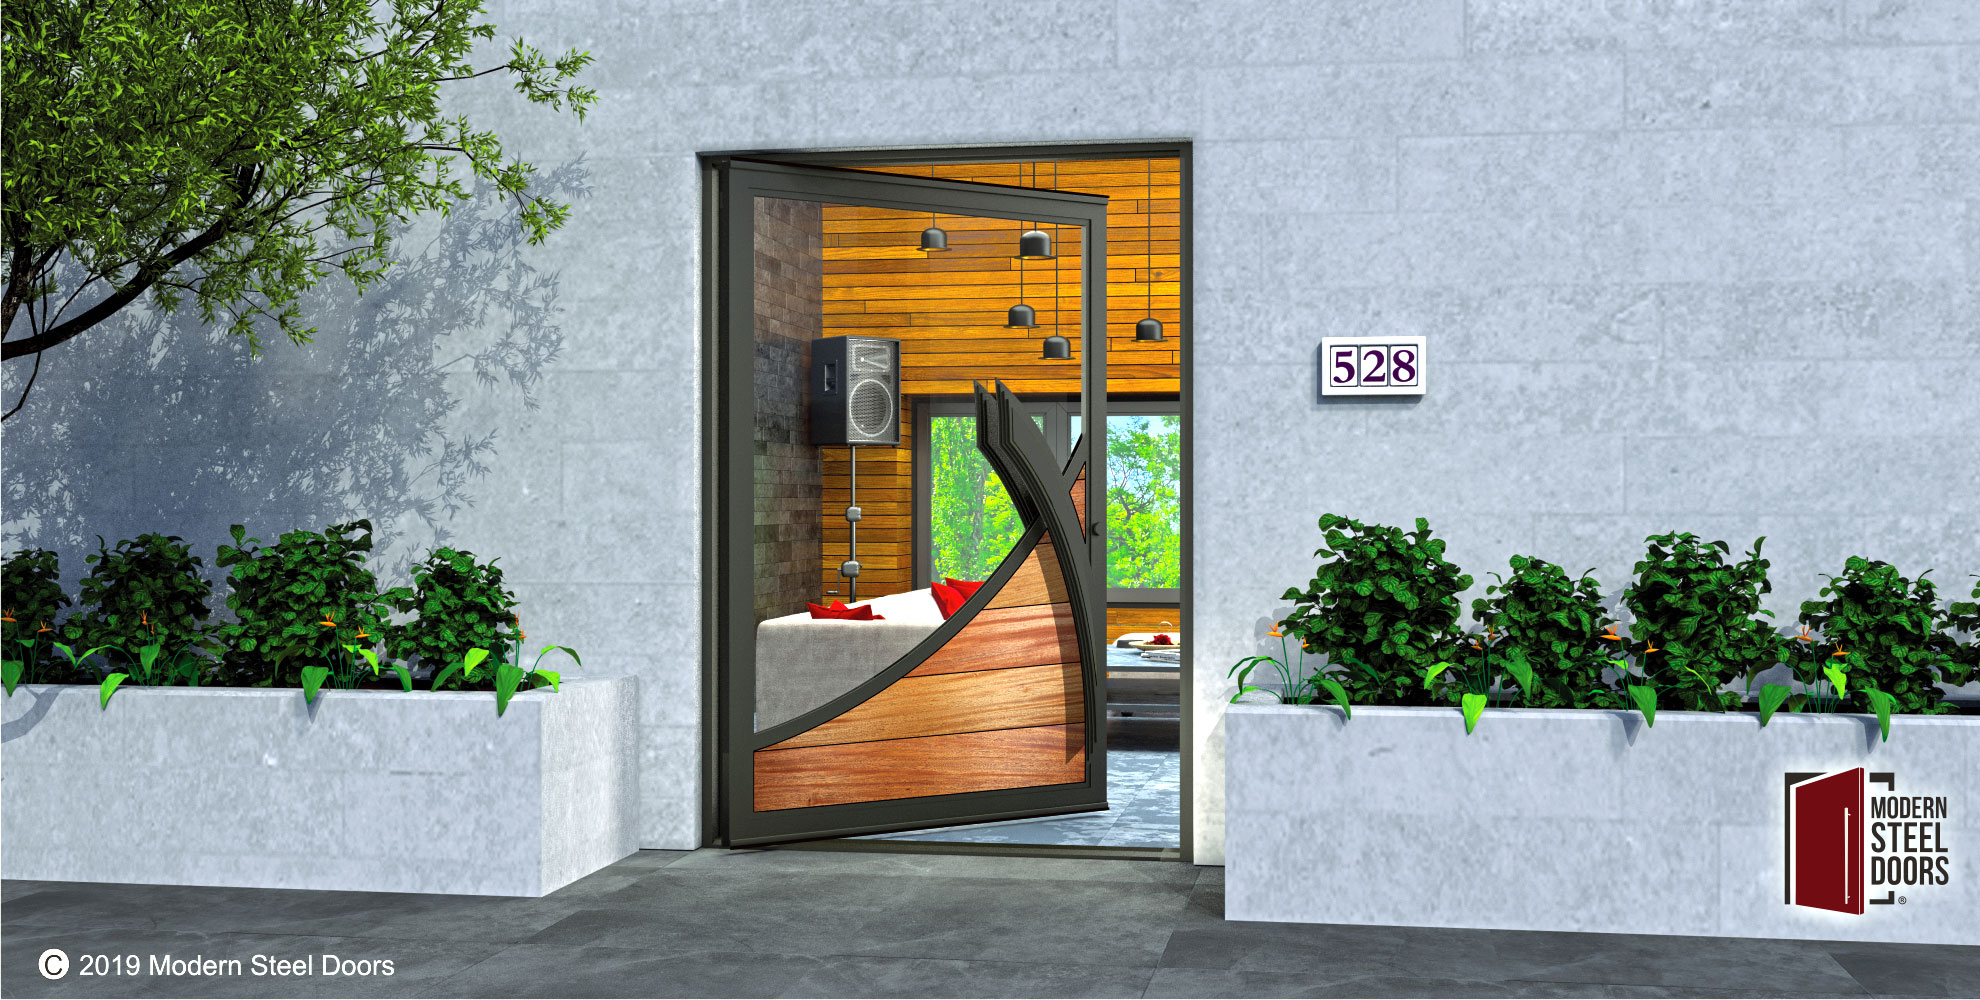 luxury entry door made of glass and authentic mahogany wood with custom modern door handles